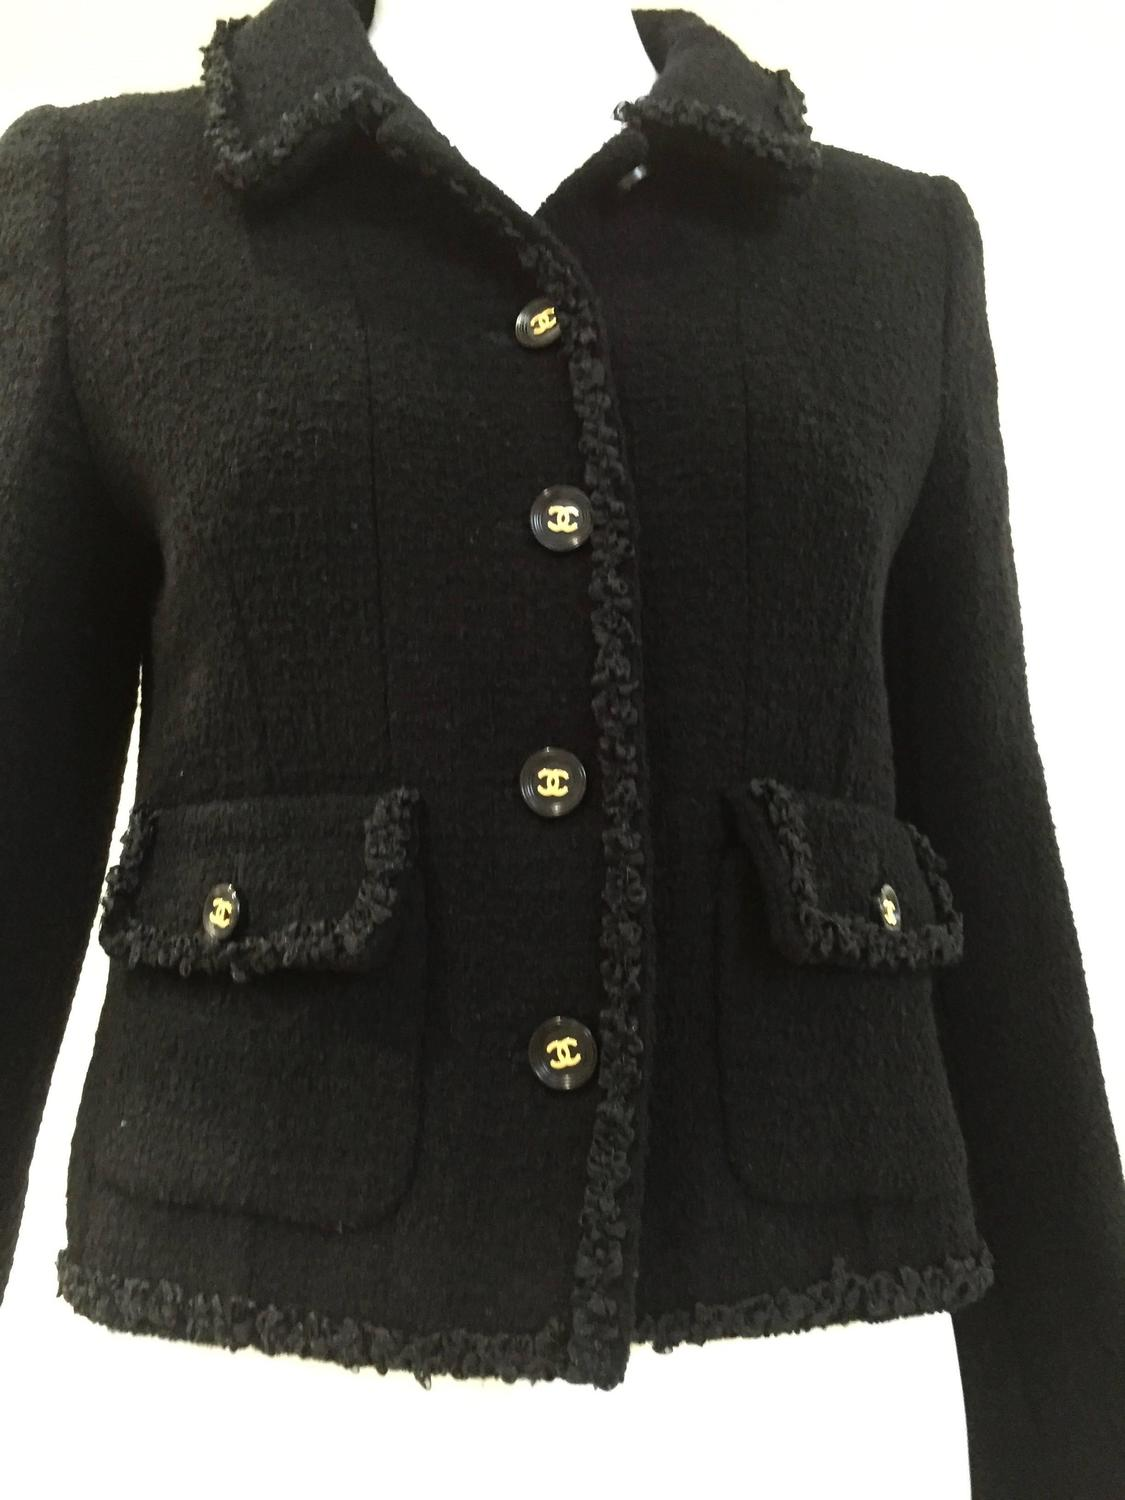 Browse women's designer jackets. Choose from a wide selection, including peplum jackets, women's long jackets and knit jackets. Official St. John Knits Site.